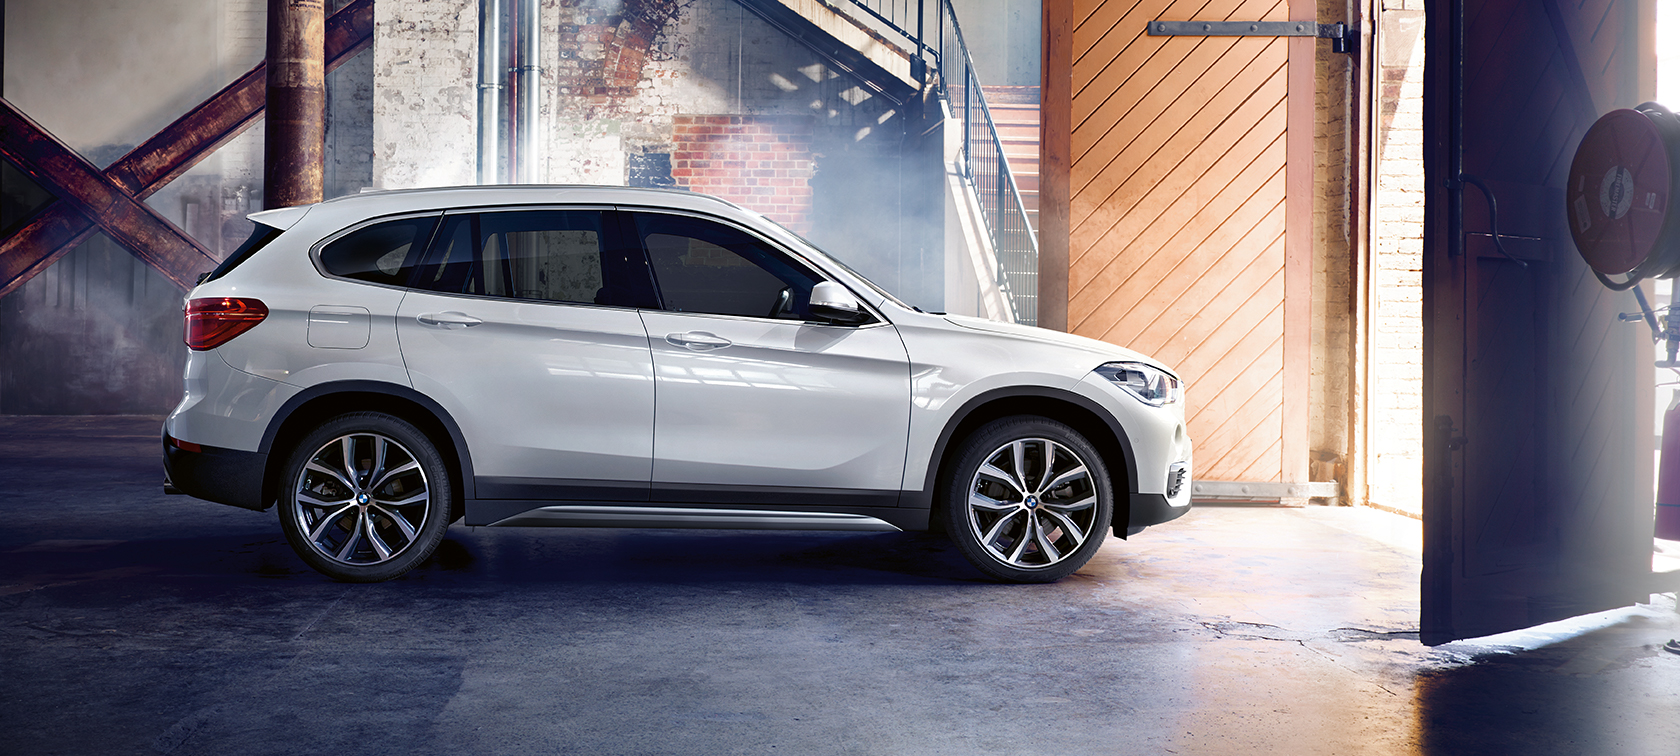 The appearance of the BMW X1